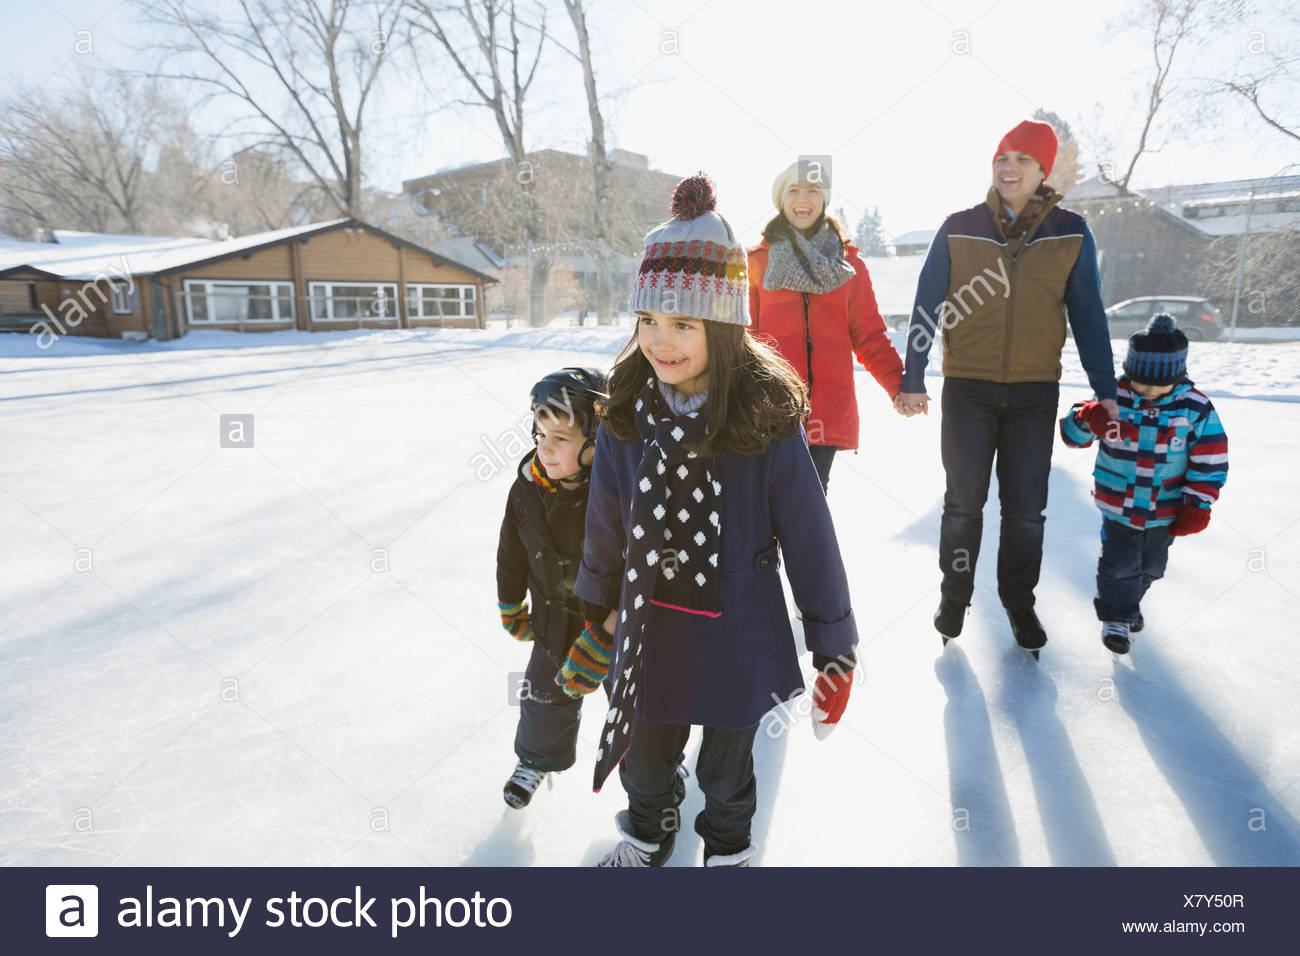 Family ice-skating on outdoor rink together Stock Photo